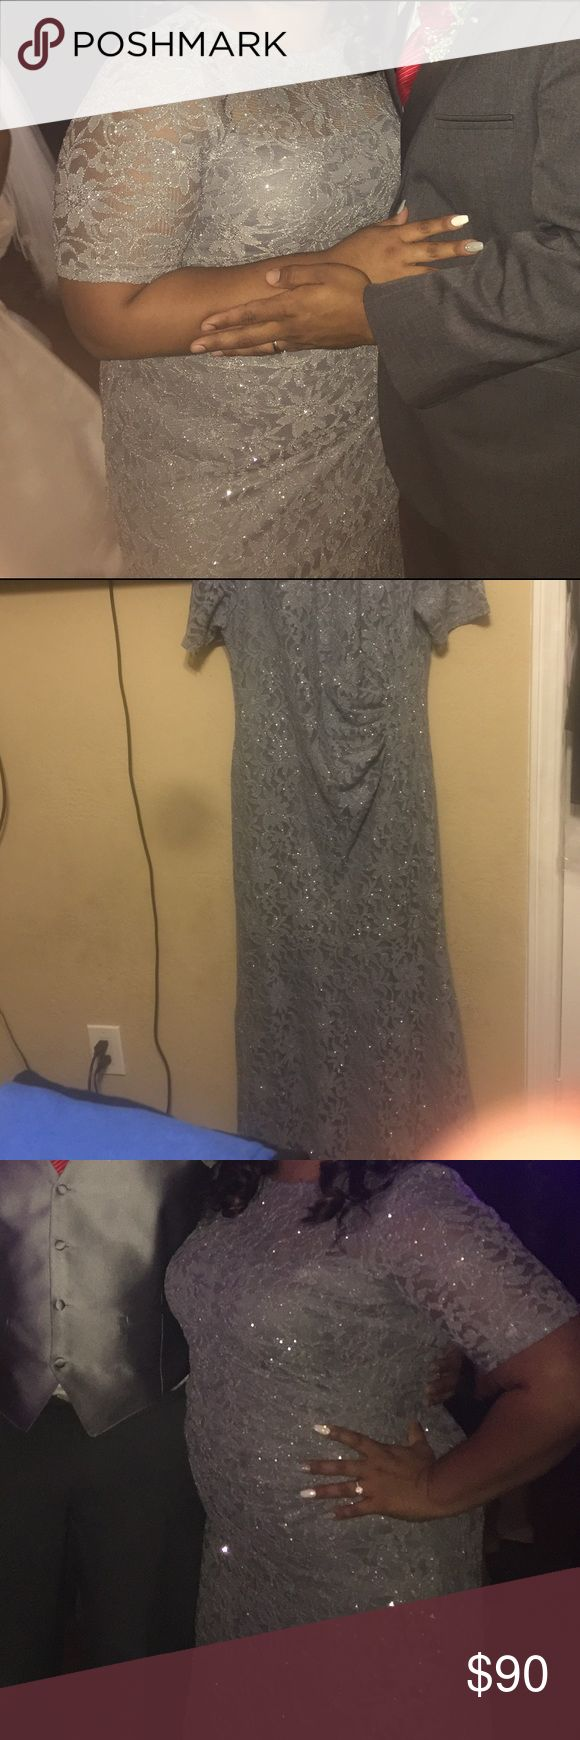 Elegant Grey dress, sparkly/glittery, 3/4 sleeve Grey dress, sparkly/glittery, long, 3/4 sleeve, stretchy material lace. Very elegant I am usually size 16 but it fit nice perfect and comfy. Worn once for a wedding. Dresses